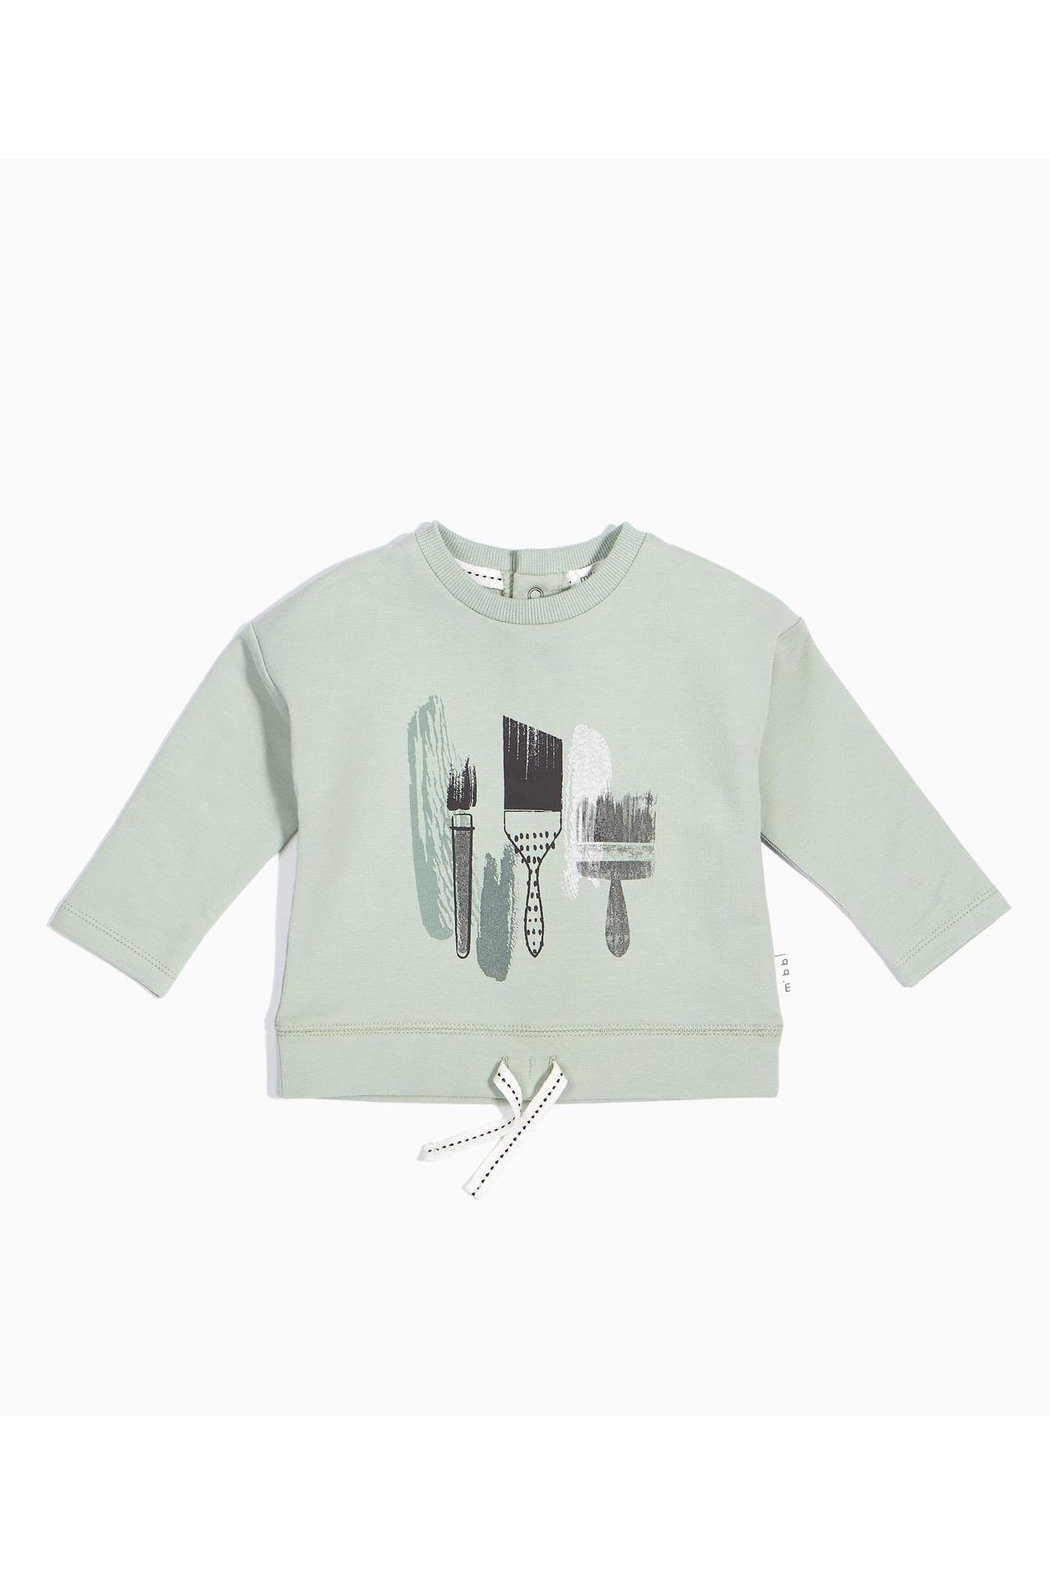 Miles Baby Painter Drawstring Sweatshirt - Main Image